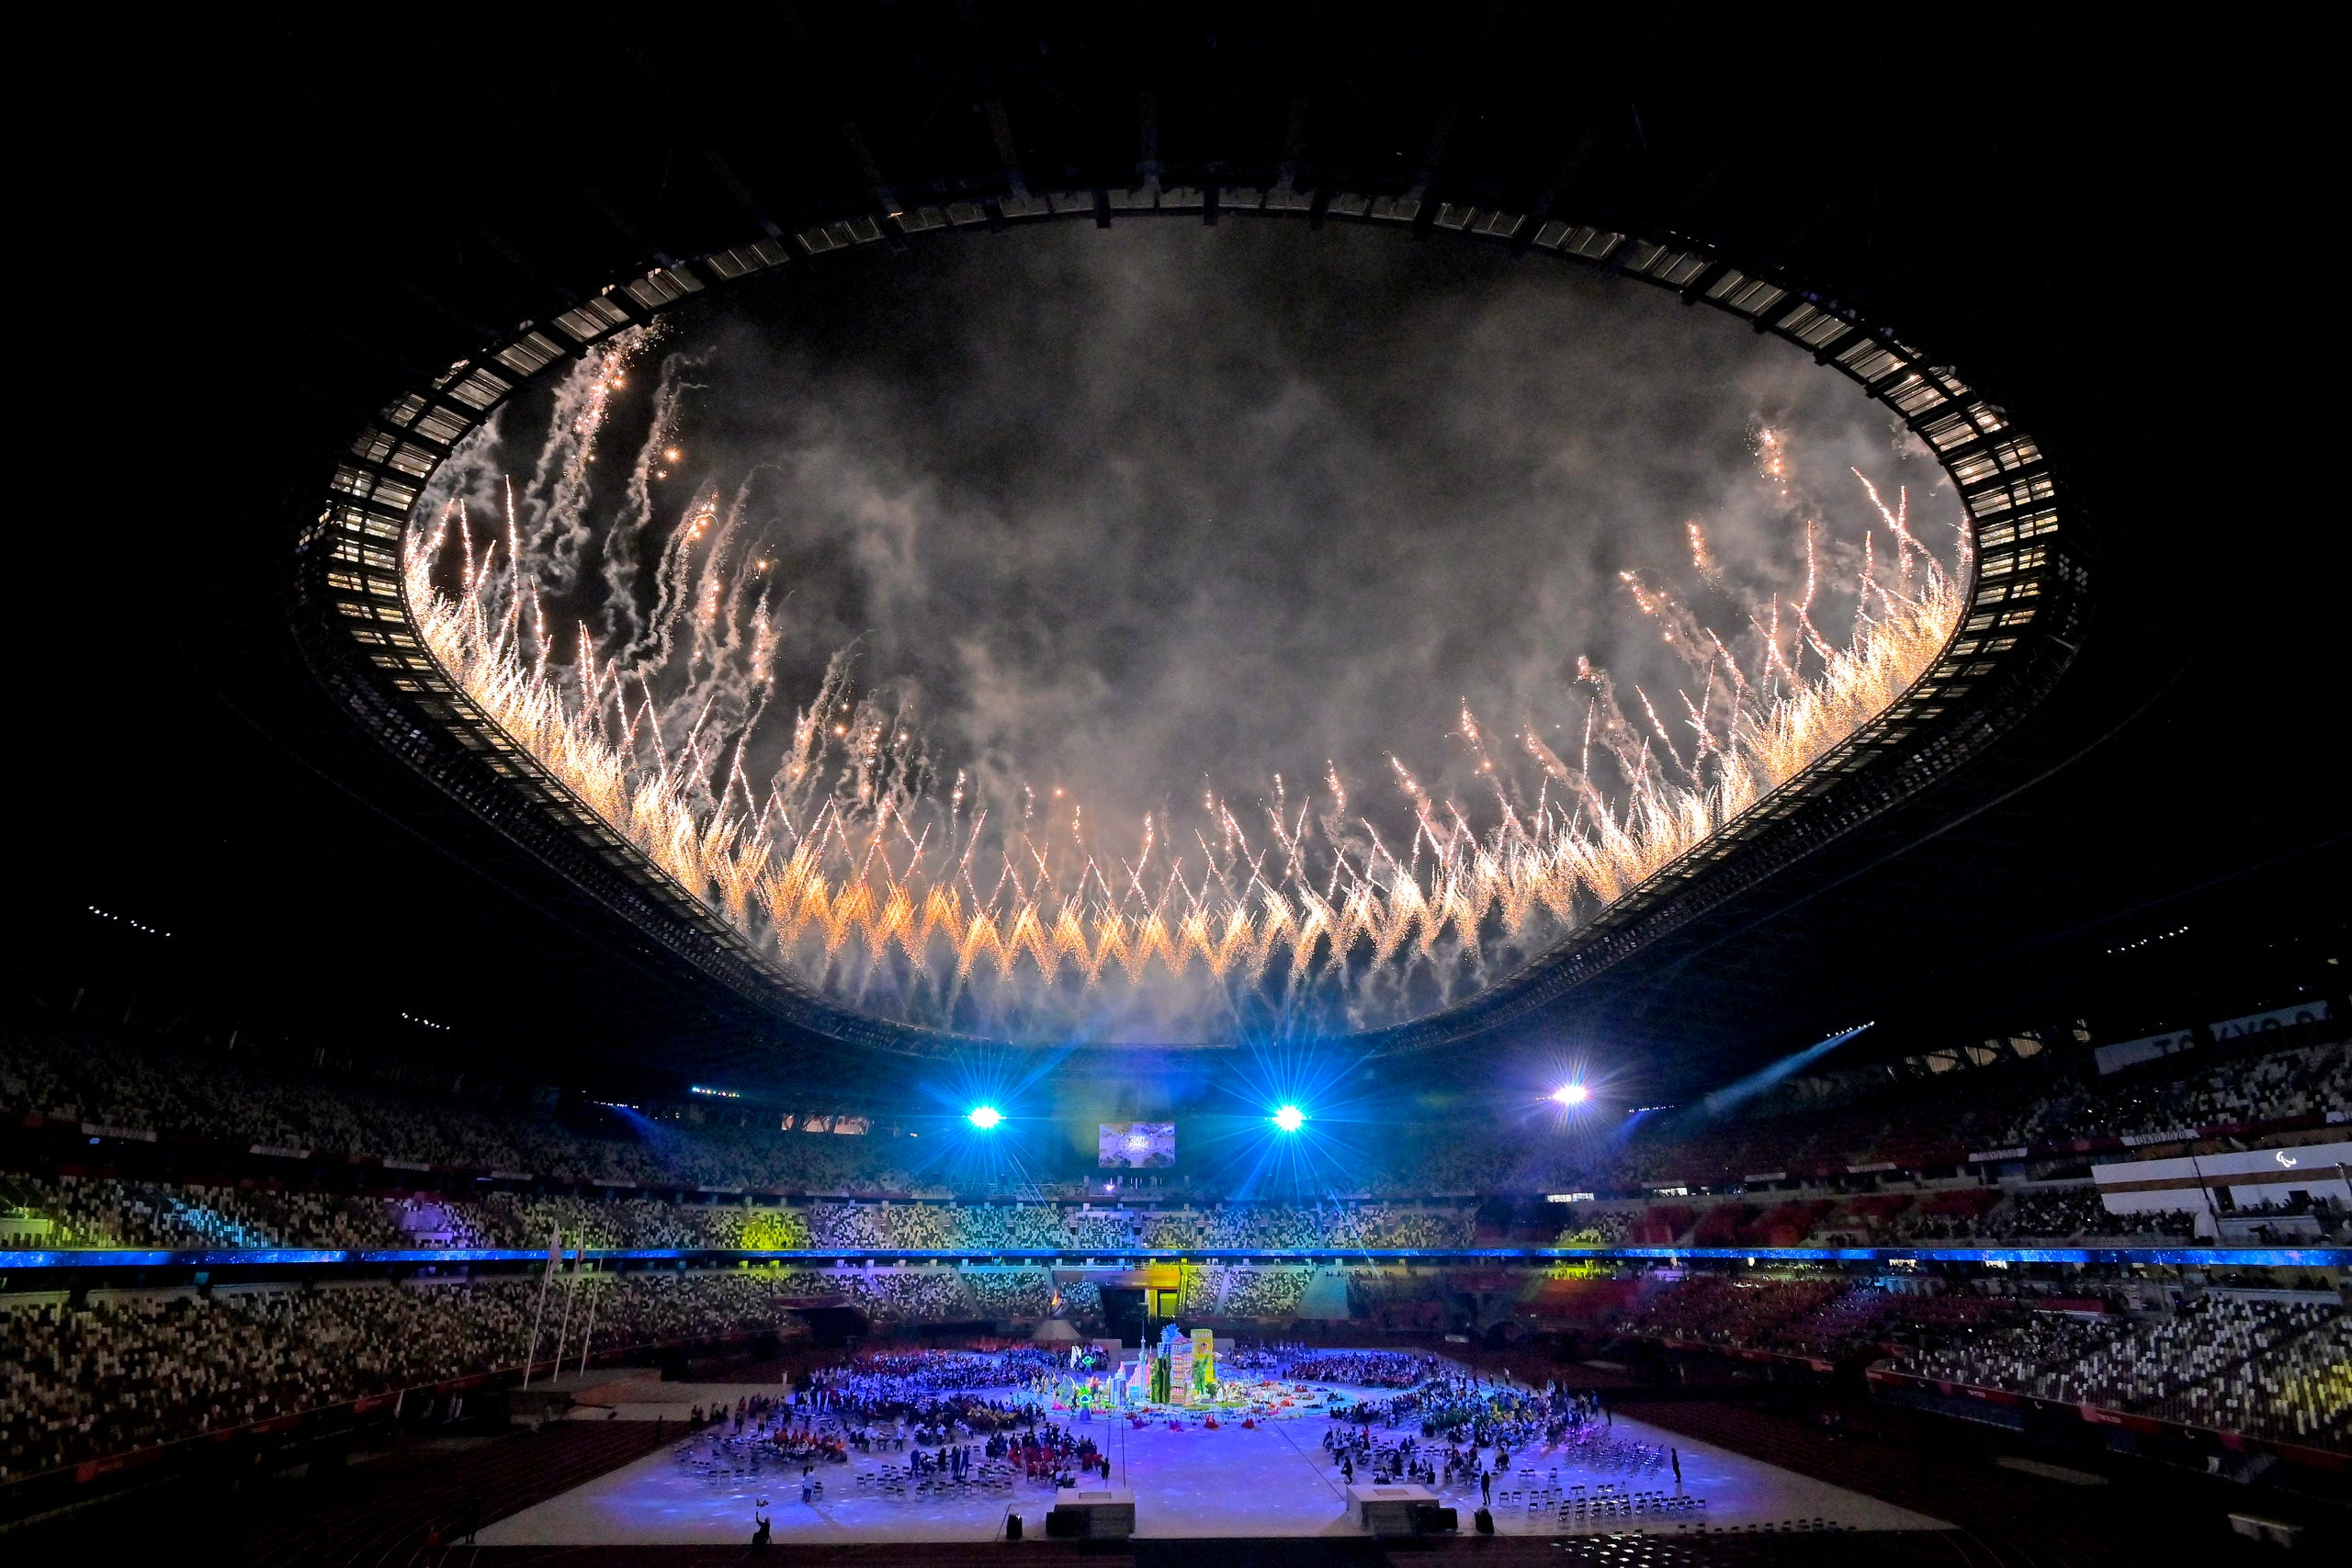 Sept. 5, 2021: Fireworks erupt above the stadium during the Closing Ceremony on day 12 of the Tokyo 2020 Paralympic Games at Olympic Stadium in Tokyo, Japan.